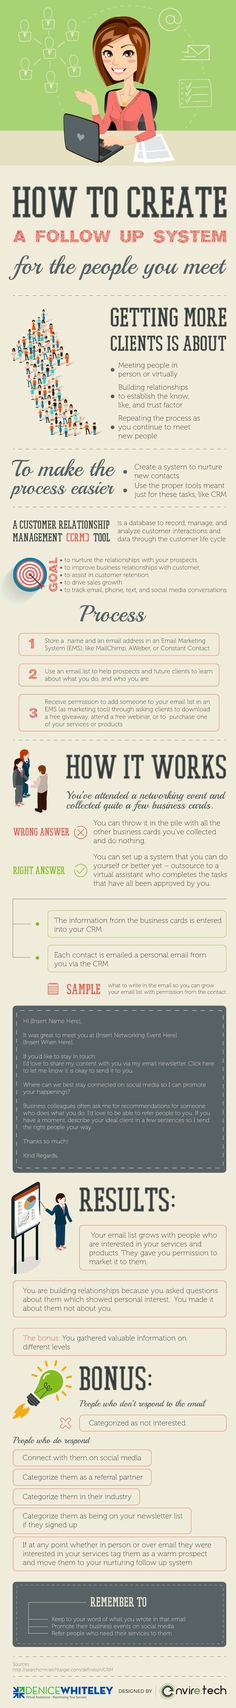 Tips on turning the people you meet into business clients www.visualistan.com/ #soapinfographic